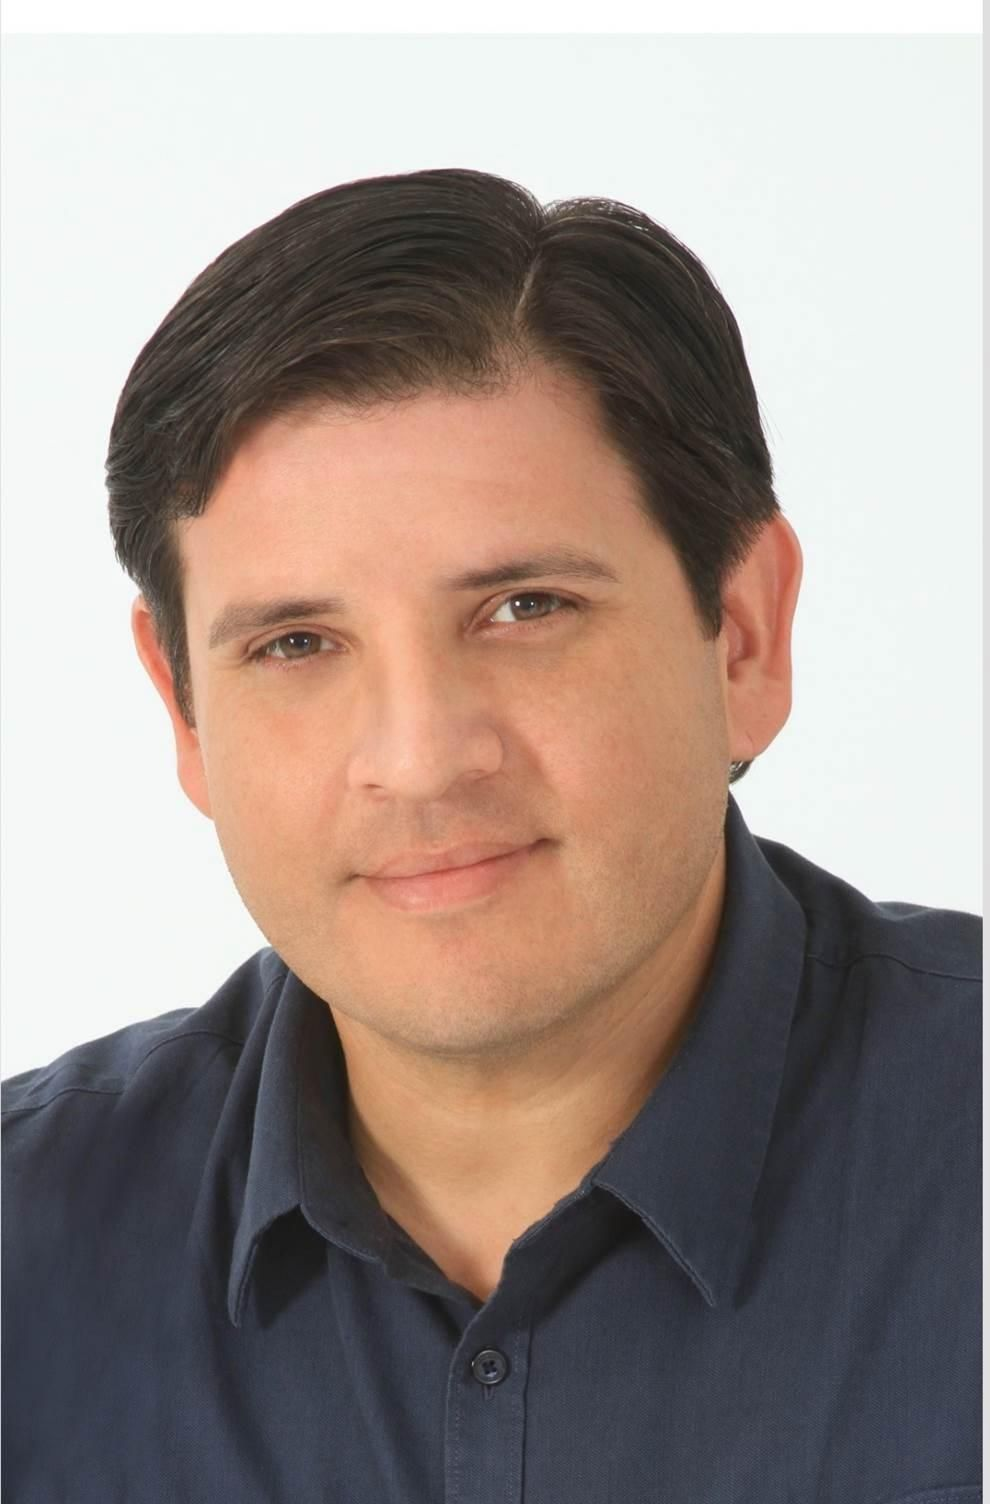 Jaime Irizarry, Director of Games of Chance, Puerto Rico Tourism Authority